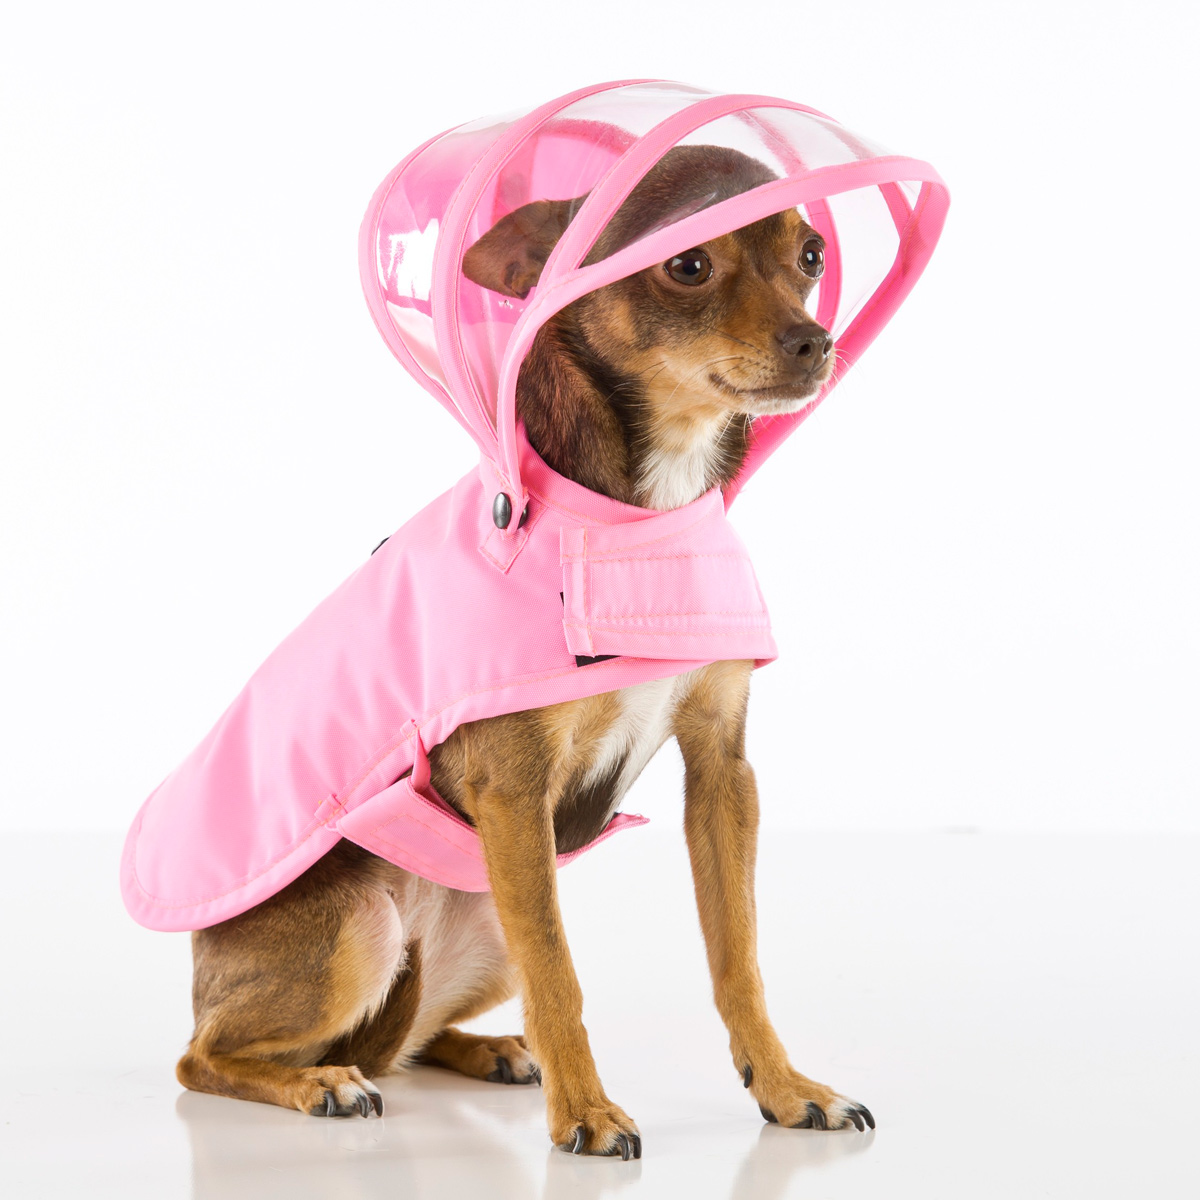 Waterproof Dog Raincoat Reflective Dogs Rain Jacket Safety Rainwear Dog Jumpsuits Poncho Clothes